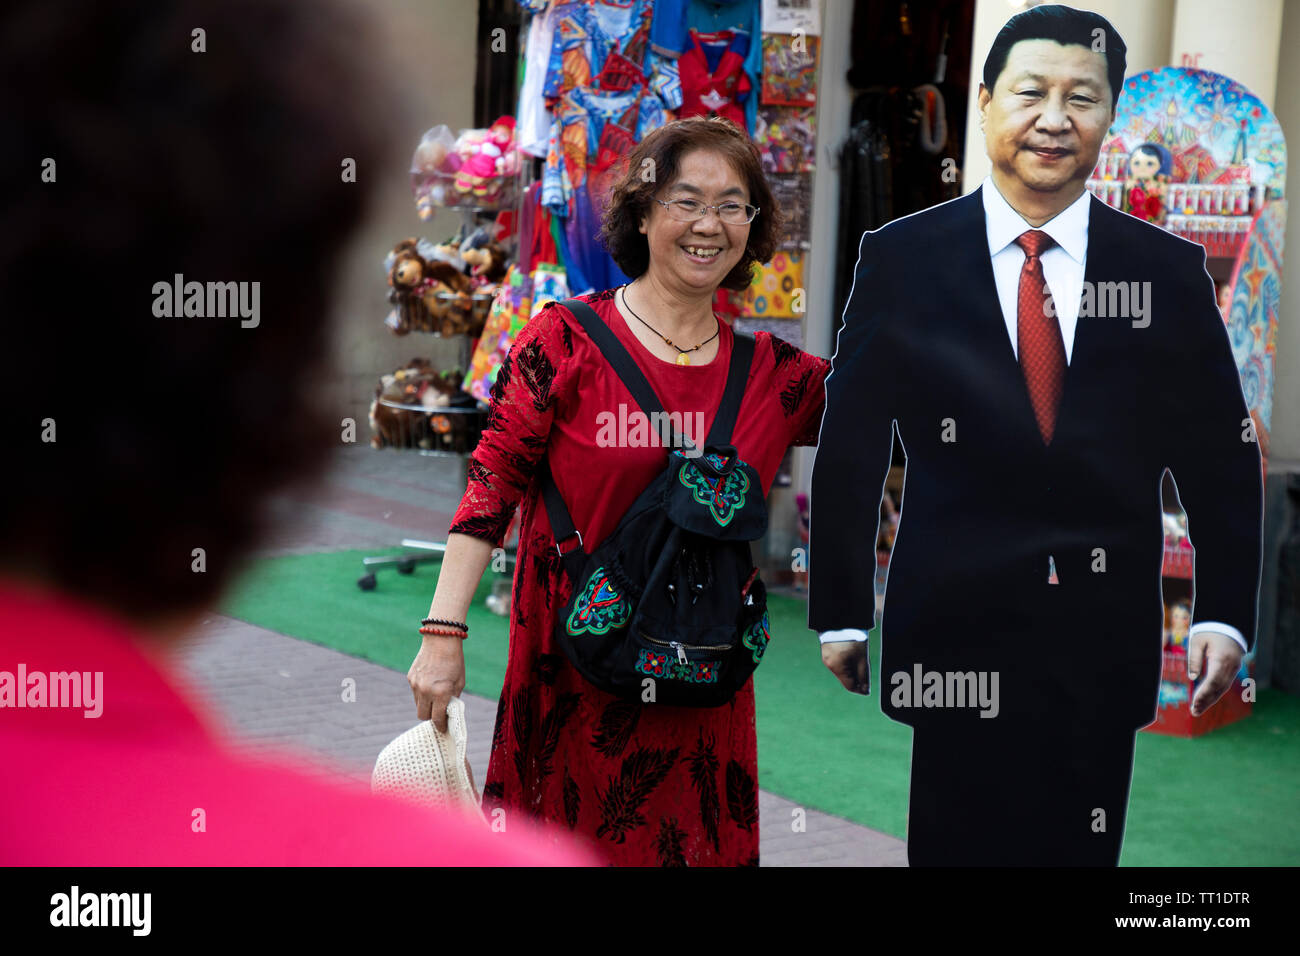 Chinese tourists photographed against the portrait of Chinese leader XI Jinping on Arbat street in the center of Moscow, Russia - Stock Image